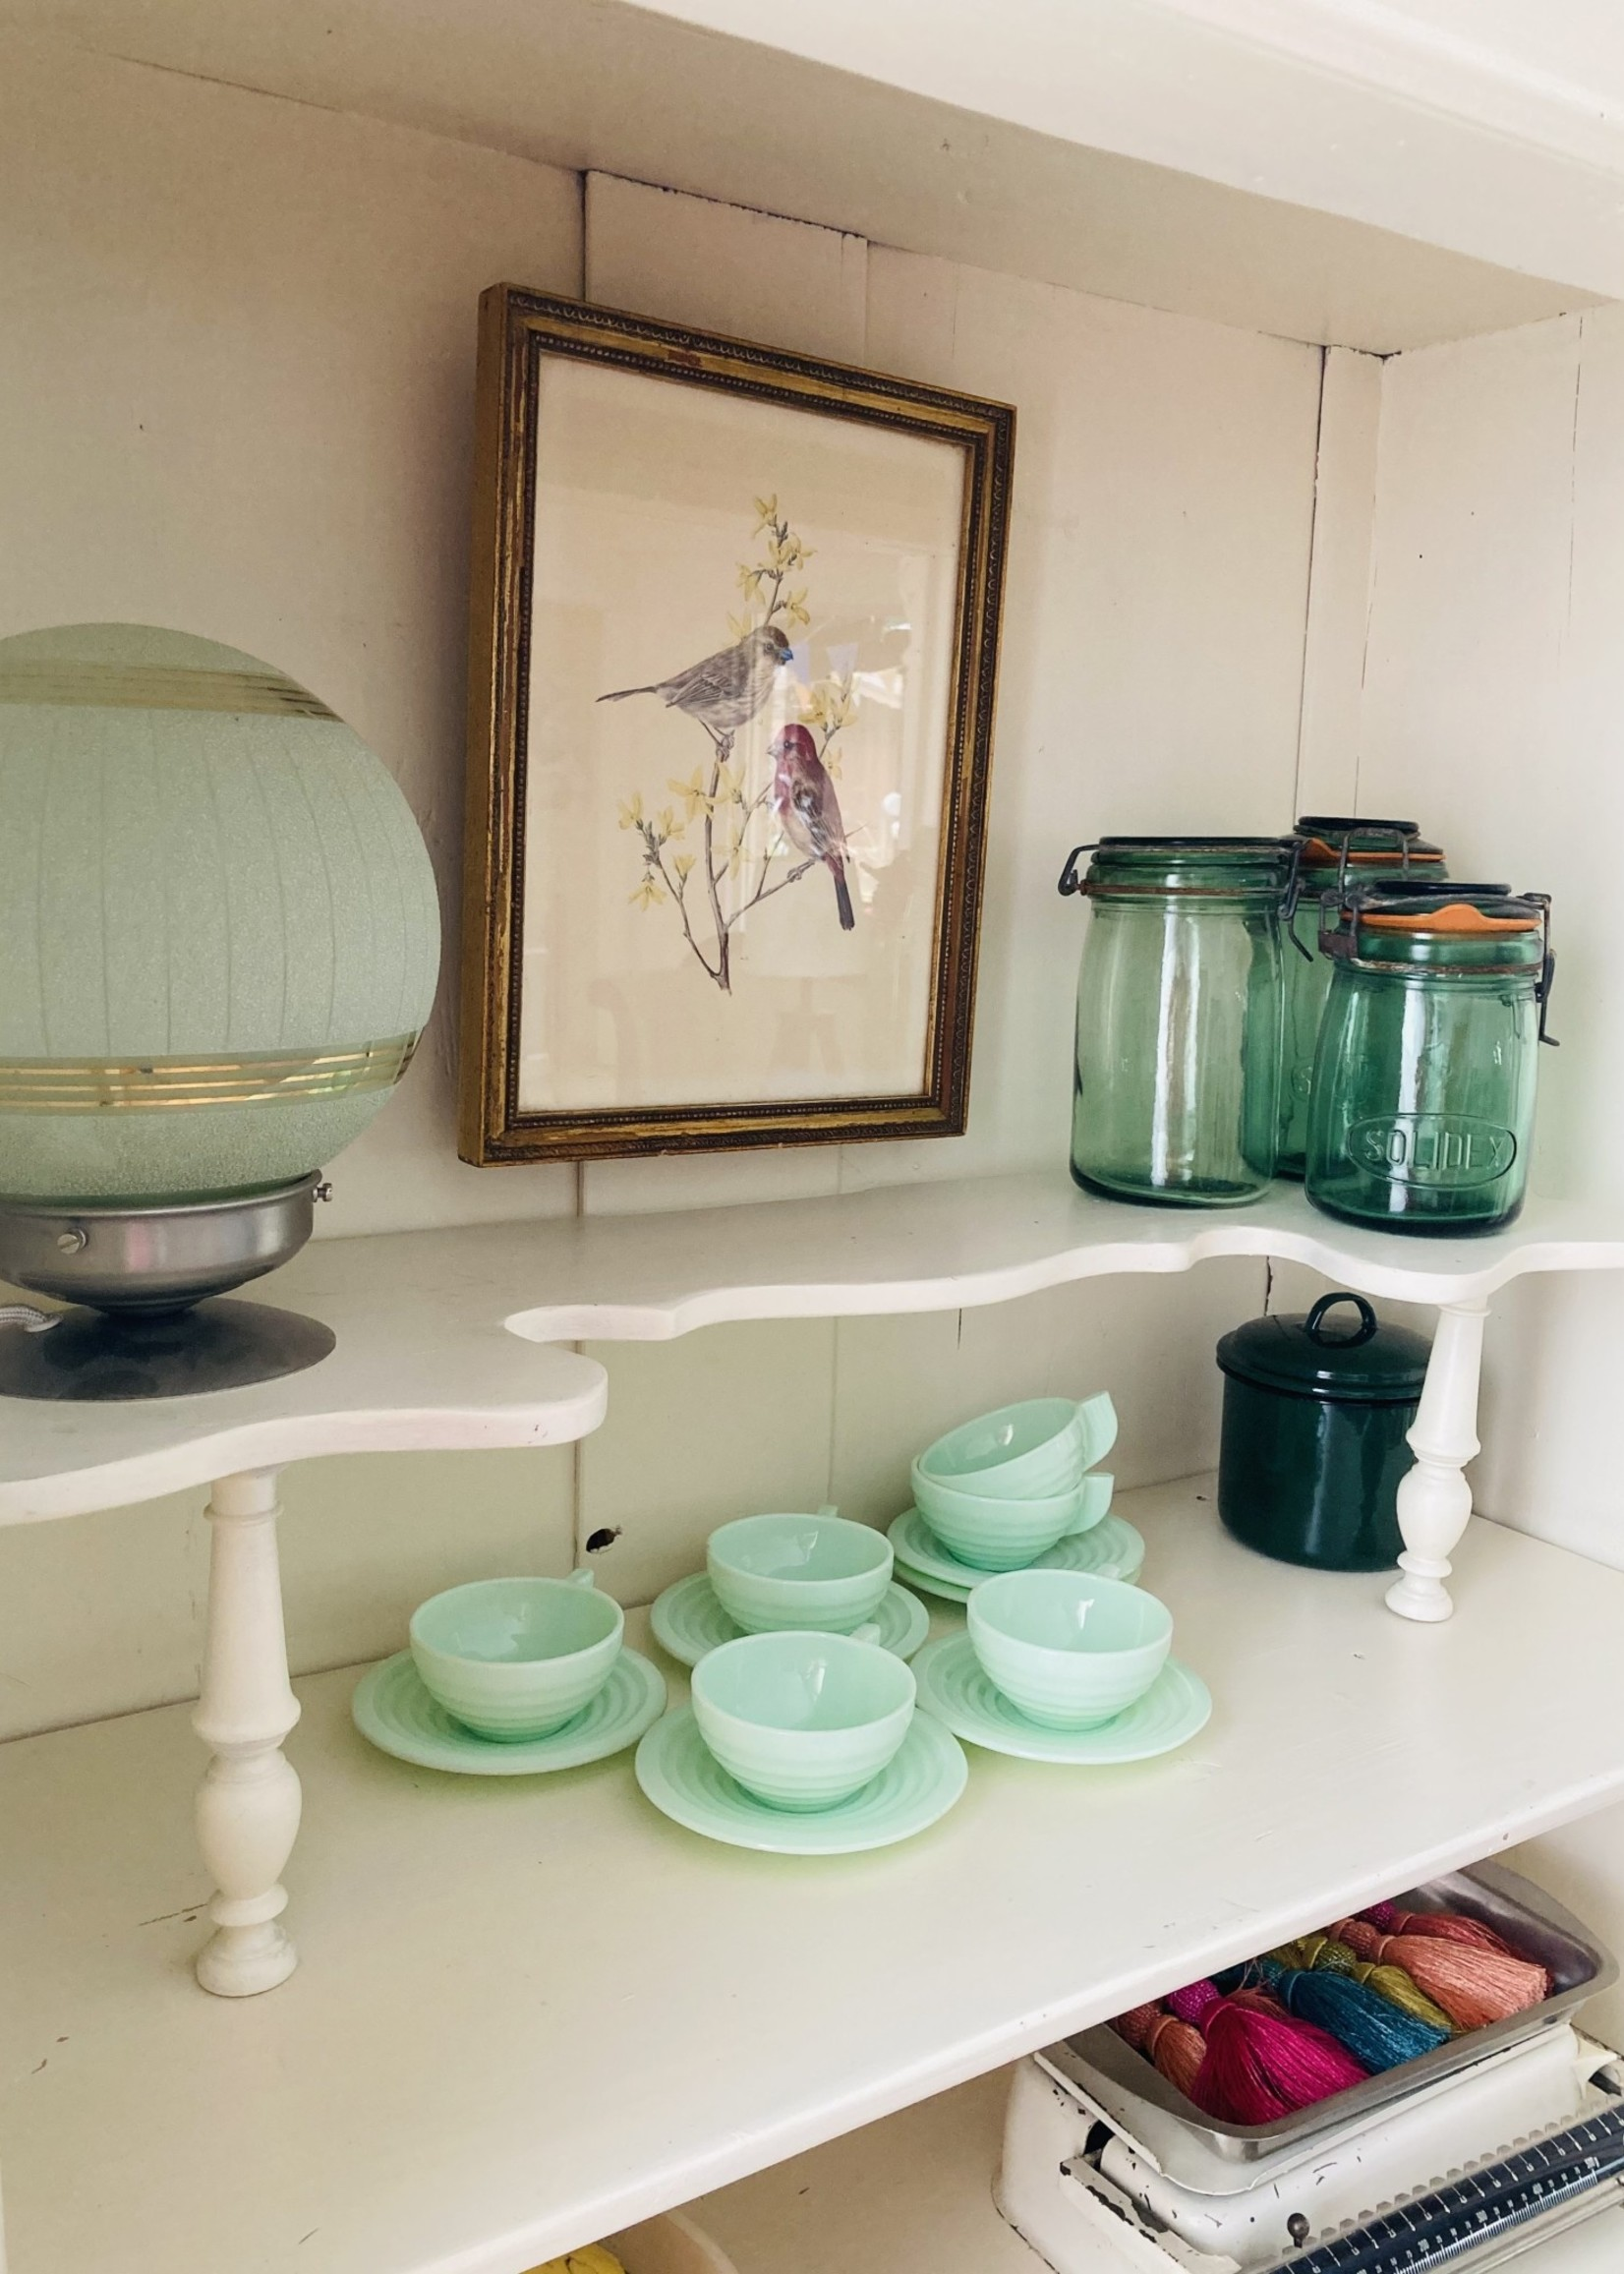 SGDG and Ideal jars in green glass from 1920